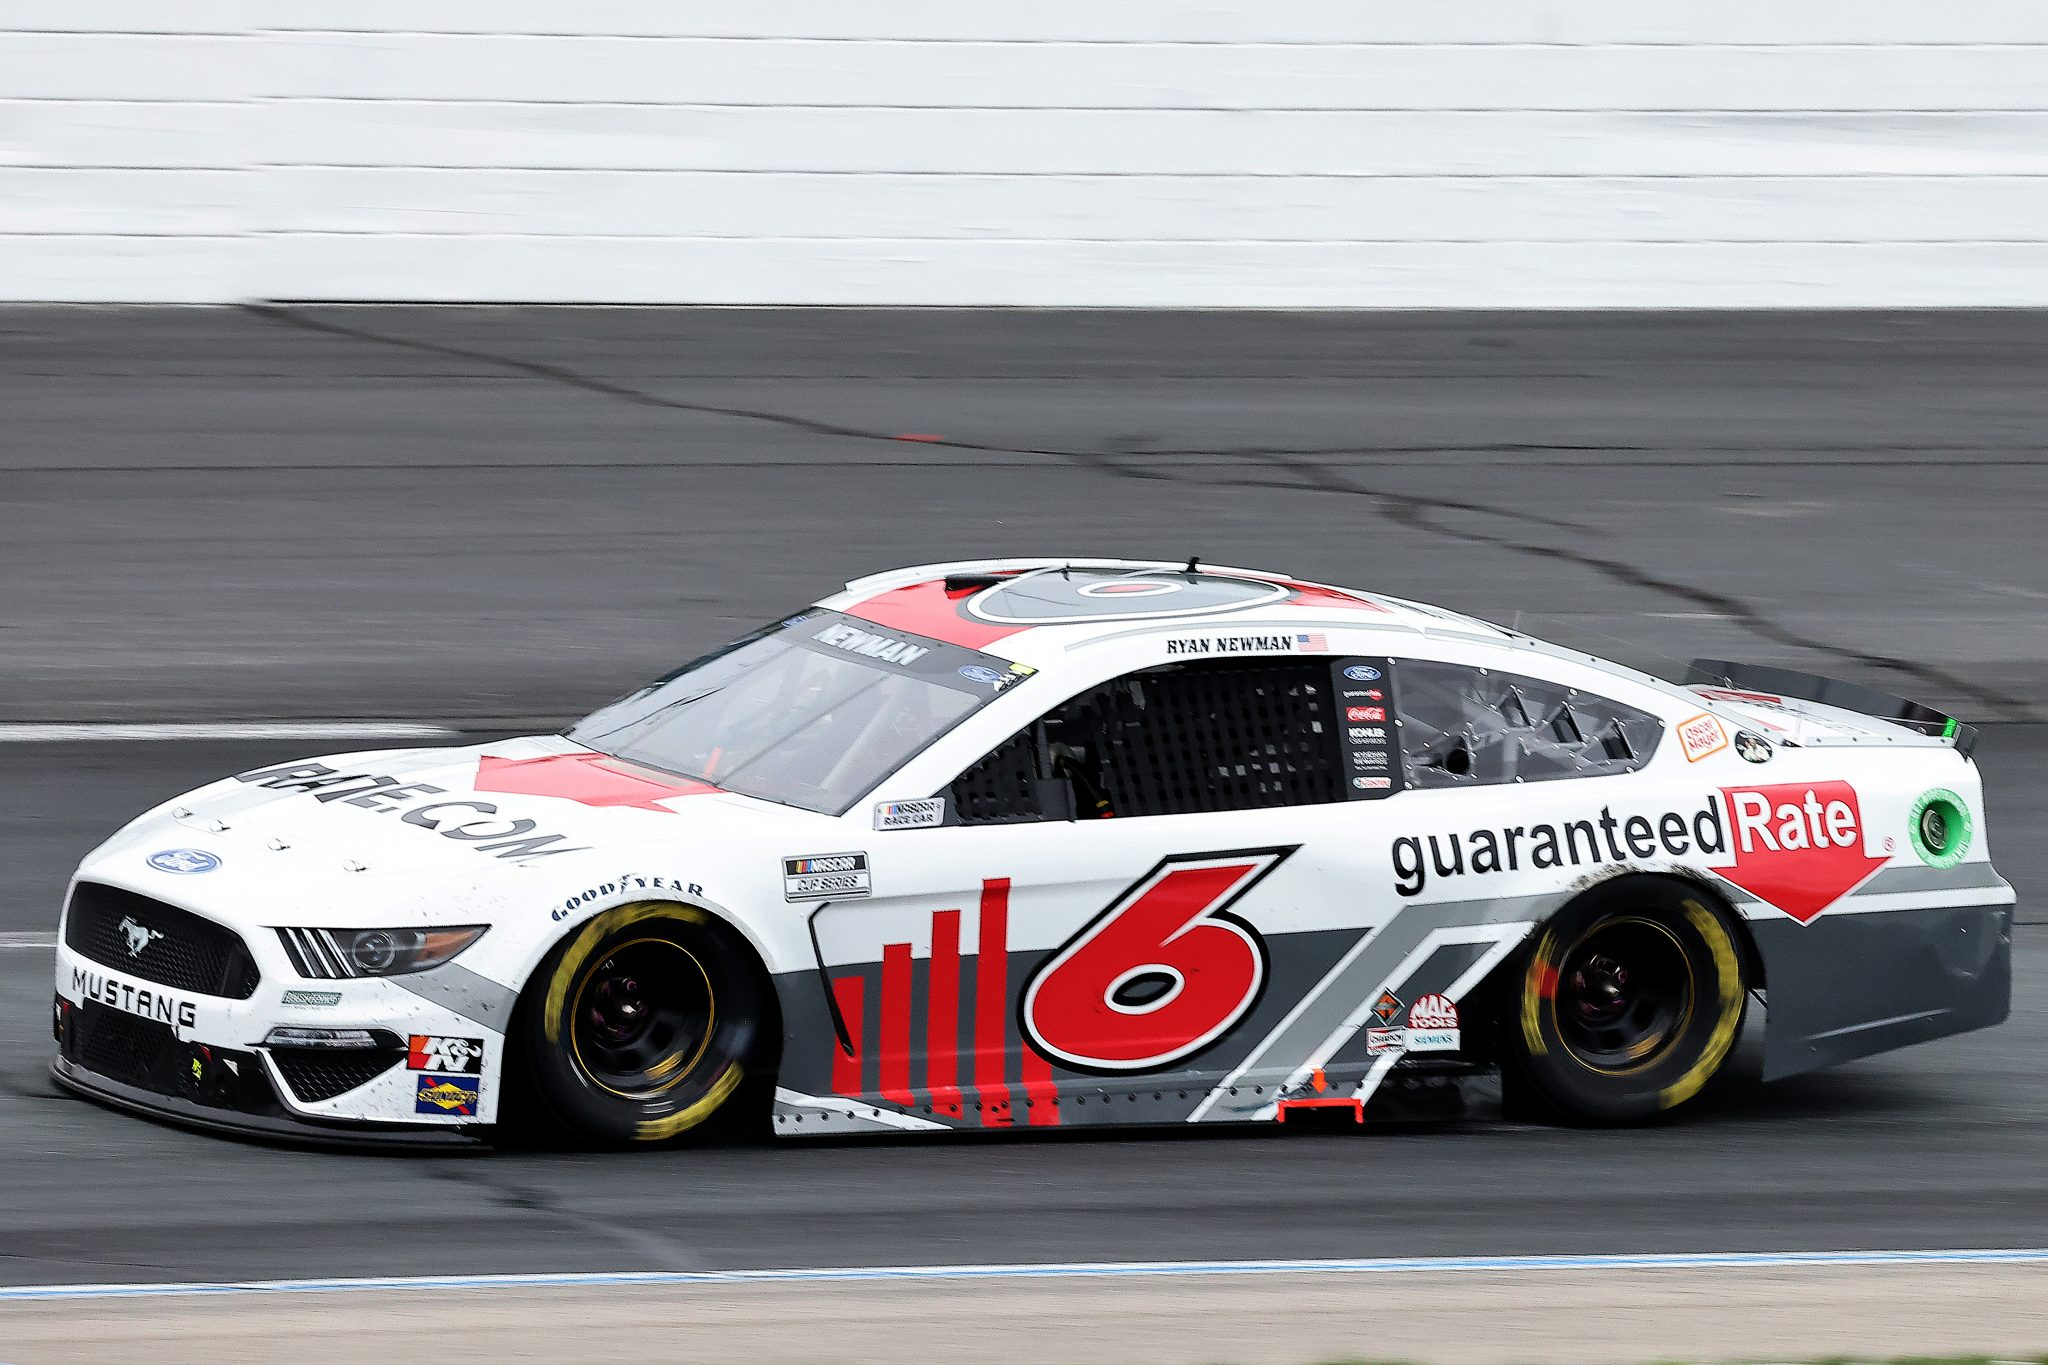 LOUDON, NEW HAMPSHIRE - JULY 18: Ryan Newman, driver of the #6 Guarenteed Rate Ford, drives during the NASCAR Cup Series Foxwoods Resort Casino 301 at New Hampshire Motor Speedway on July 18, 2021 in Loudon, New Hampshire. (Photo by James Gilbert/Getty Images) | Getty Images